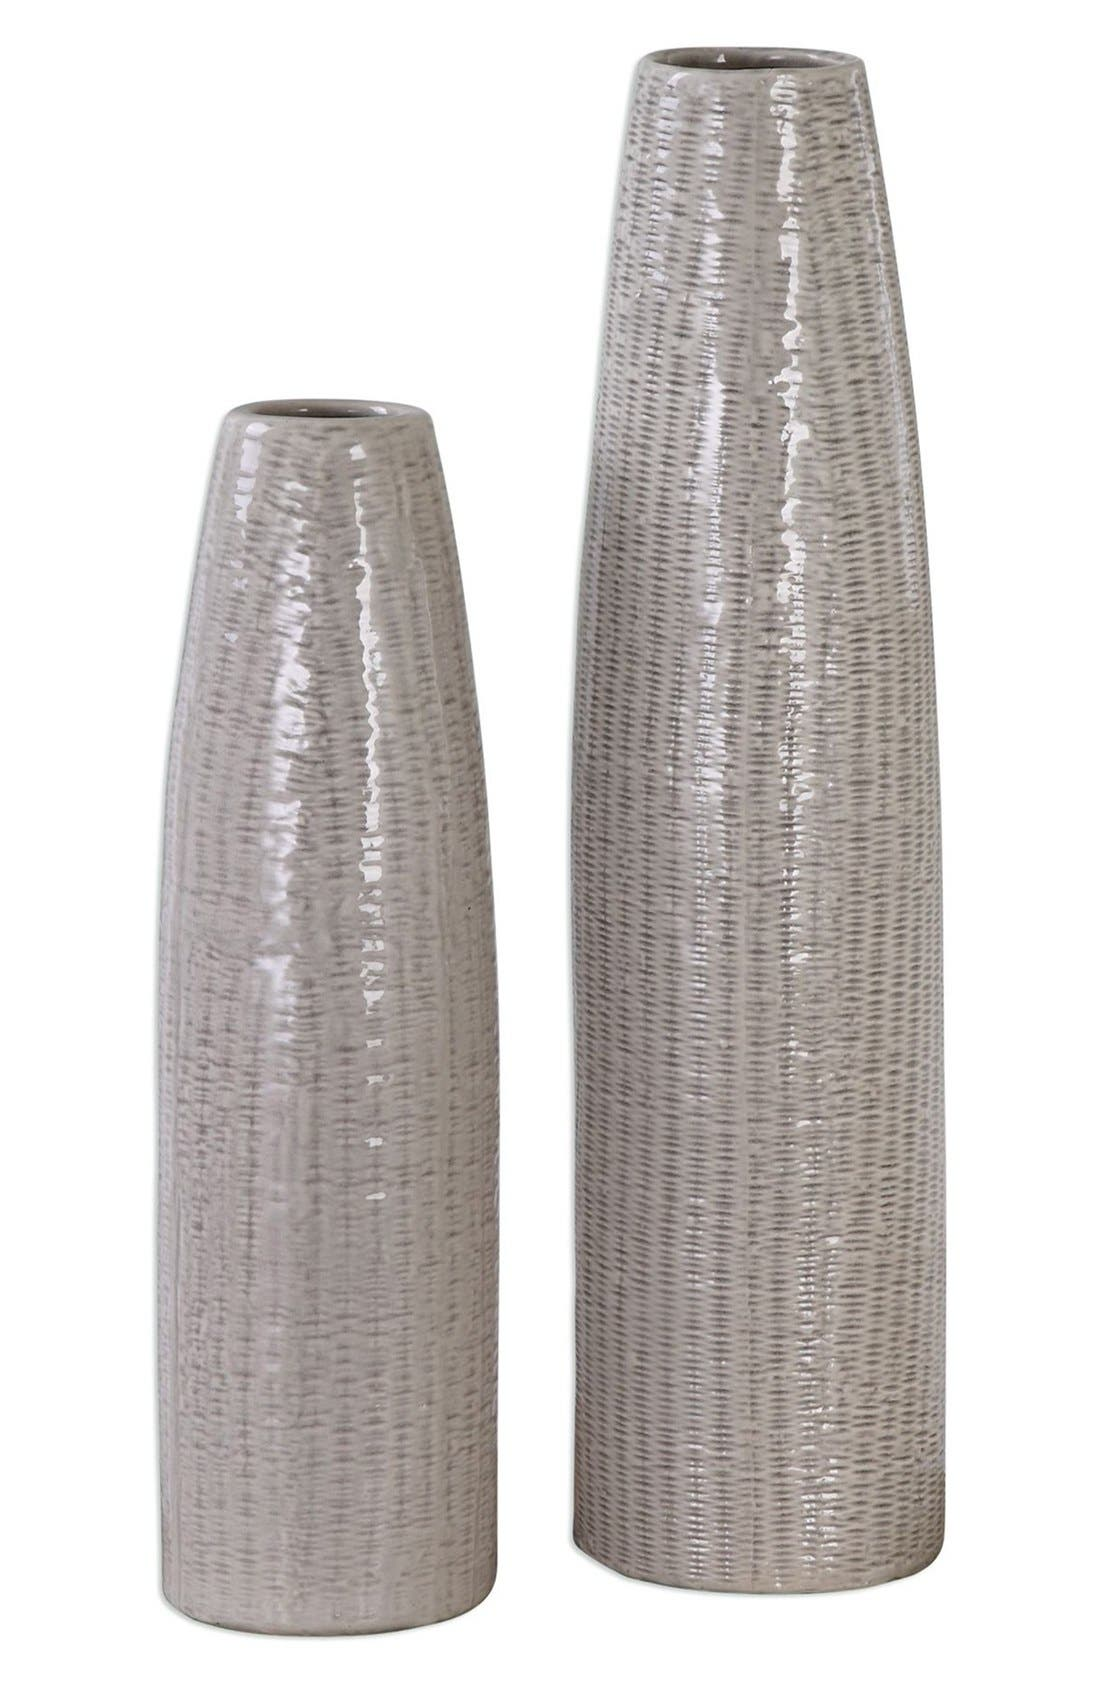 Textured Ceramic Vases,                             Main thumbnail 1, color,                             Ivory